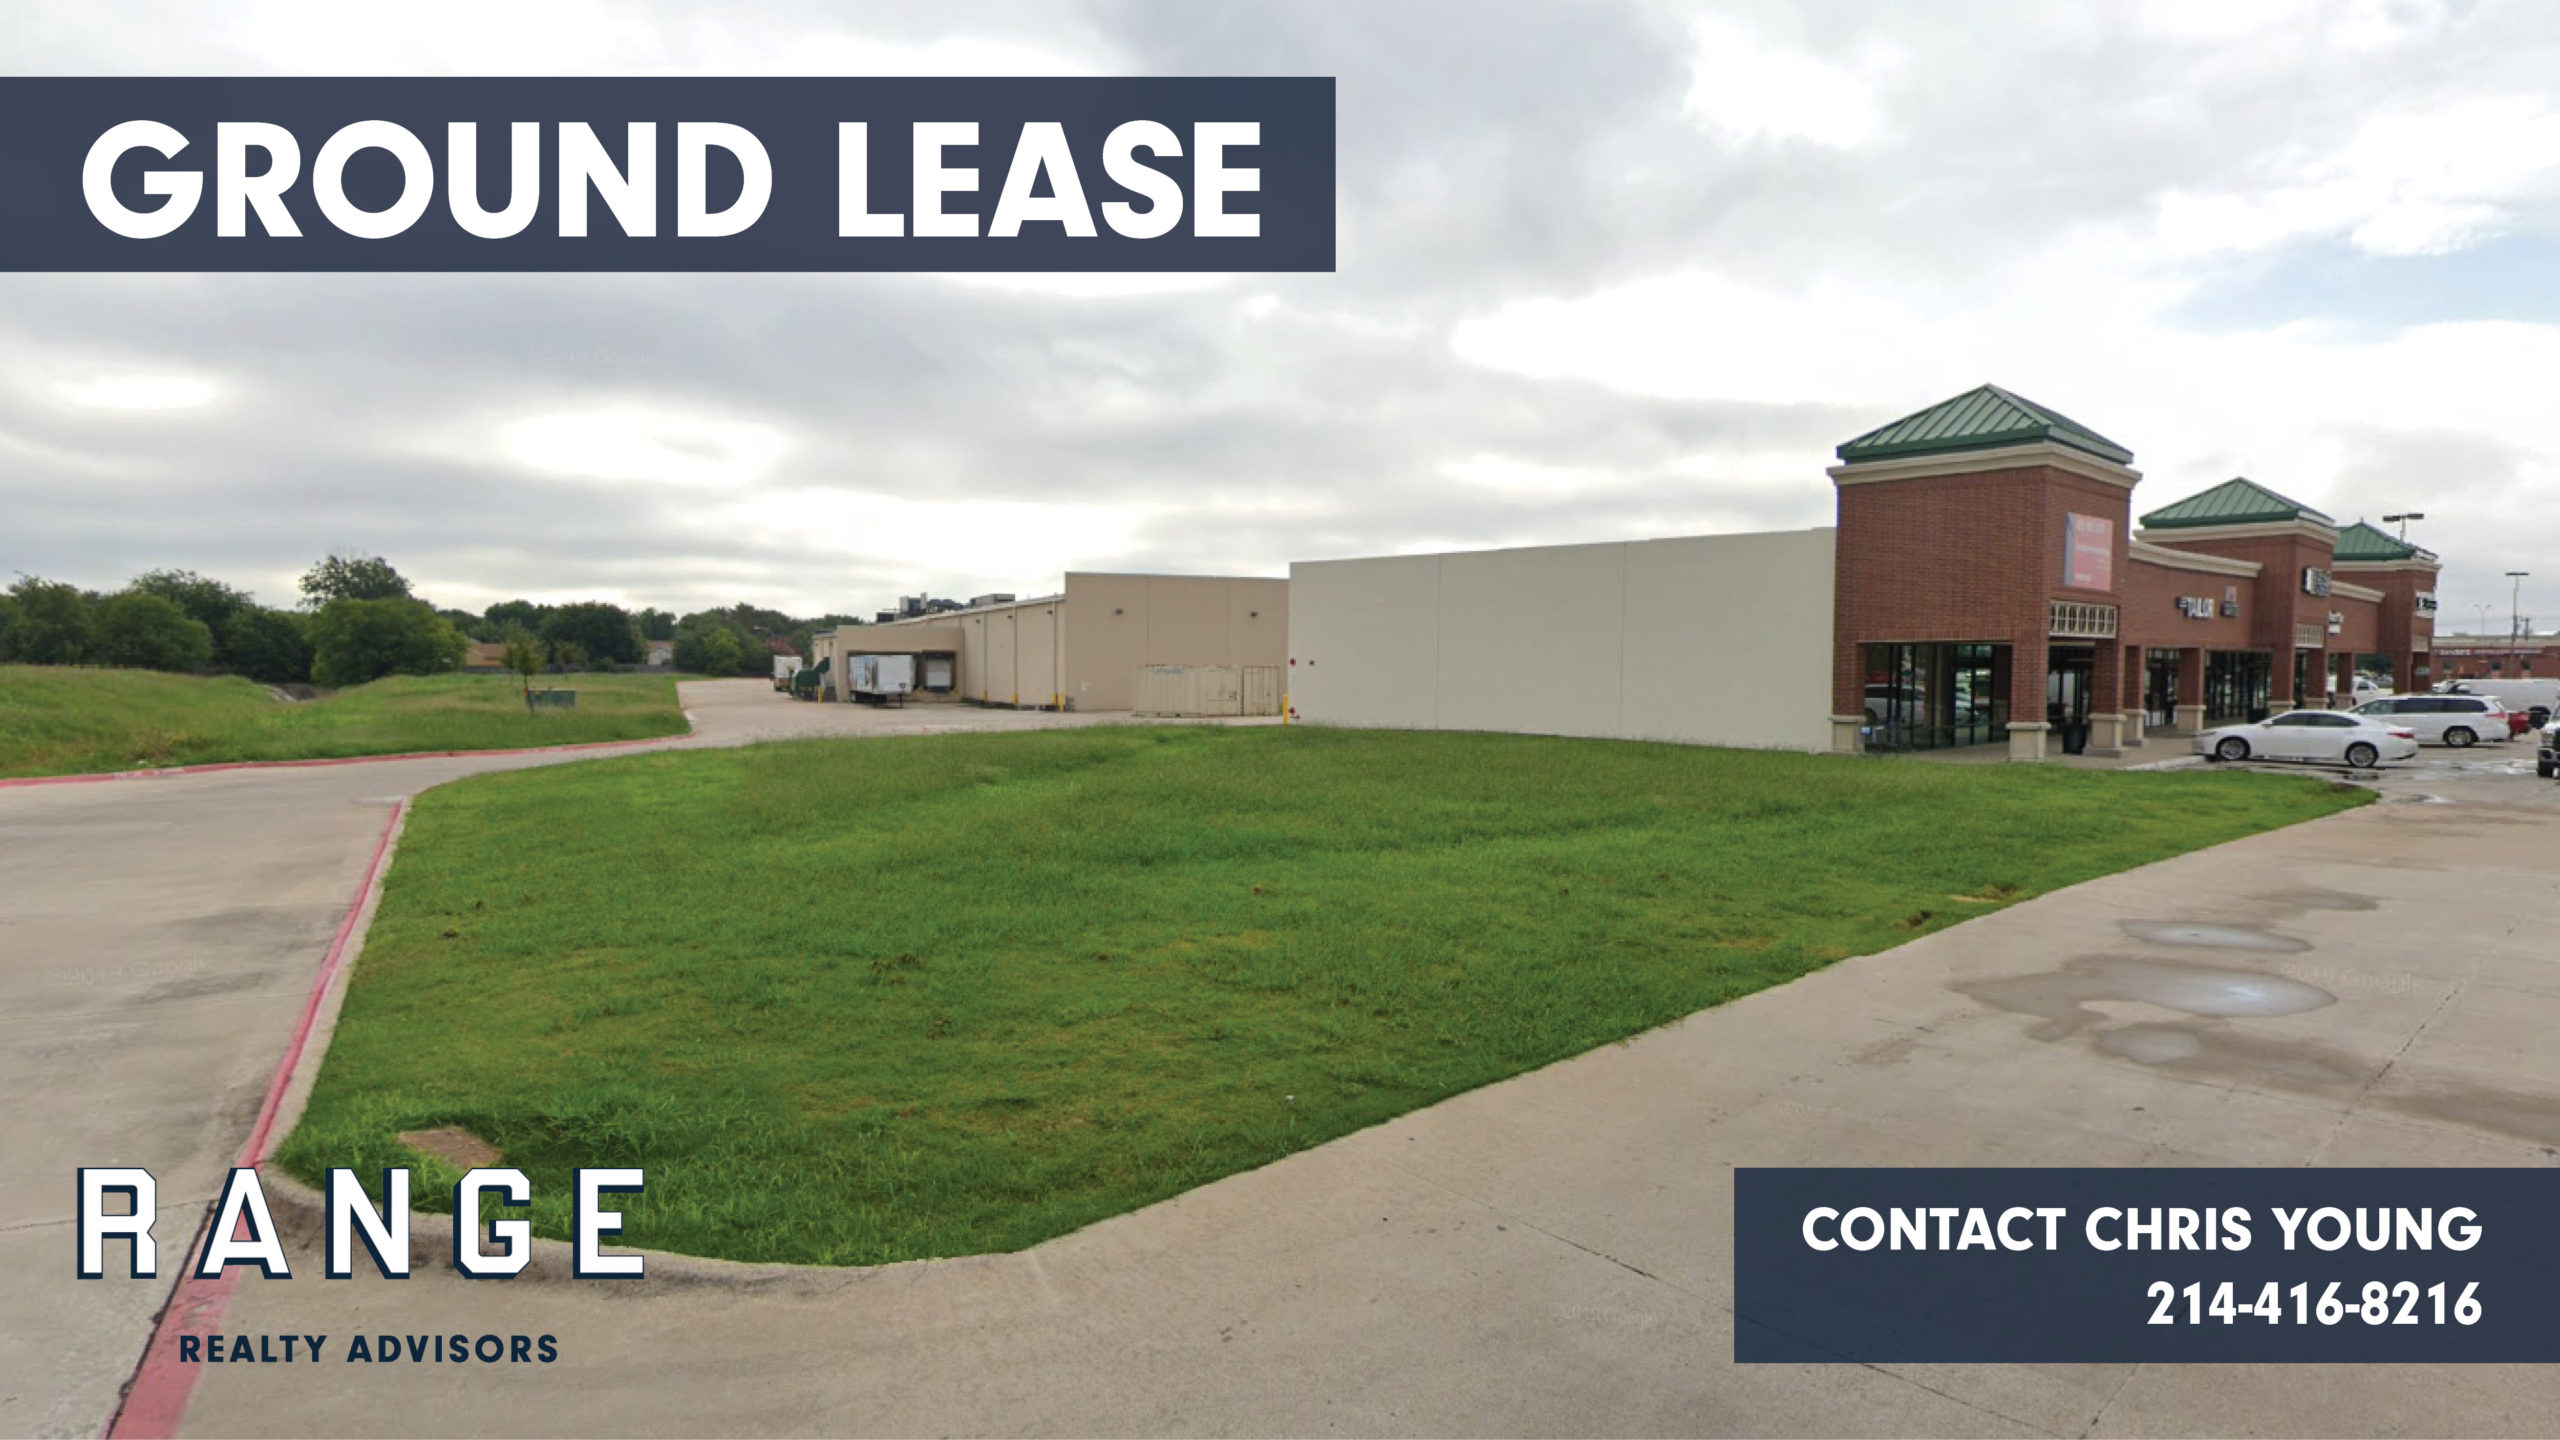 Ground Lease - 6650 N Beach St in Fort Worth, TX